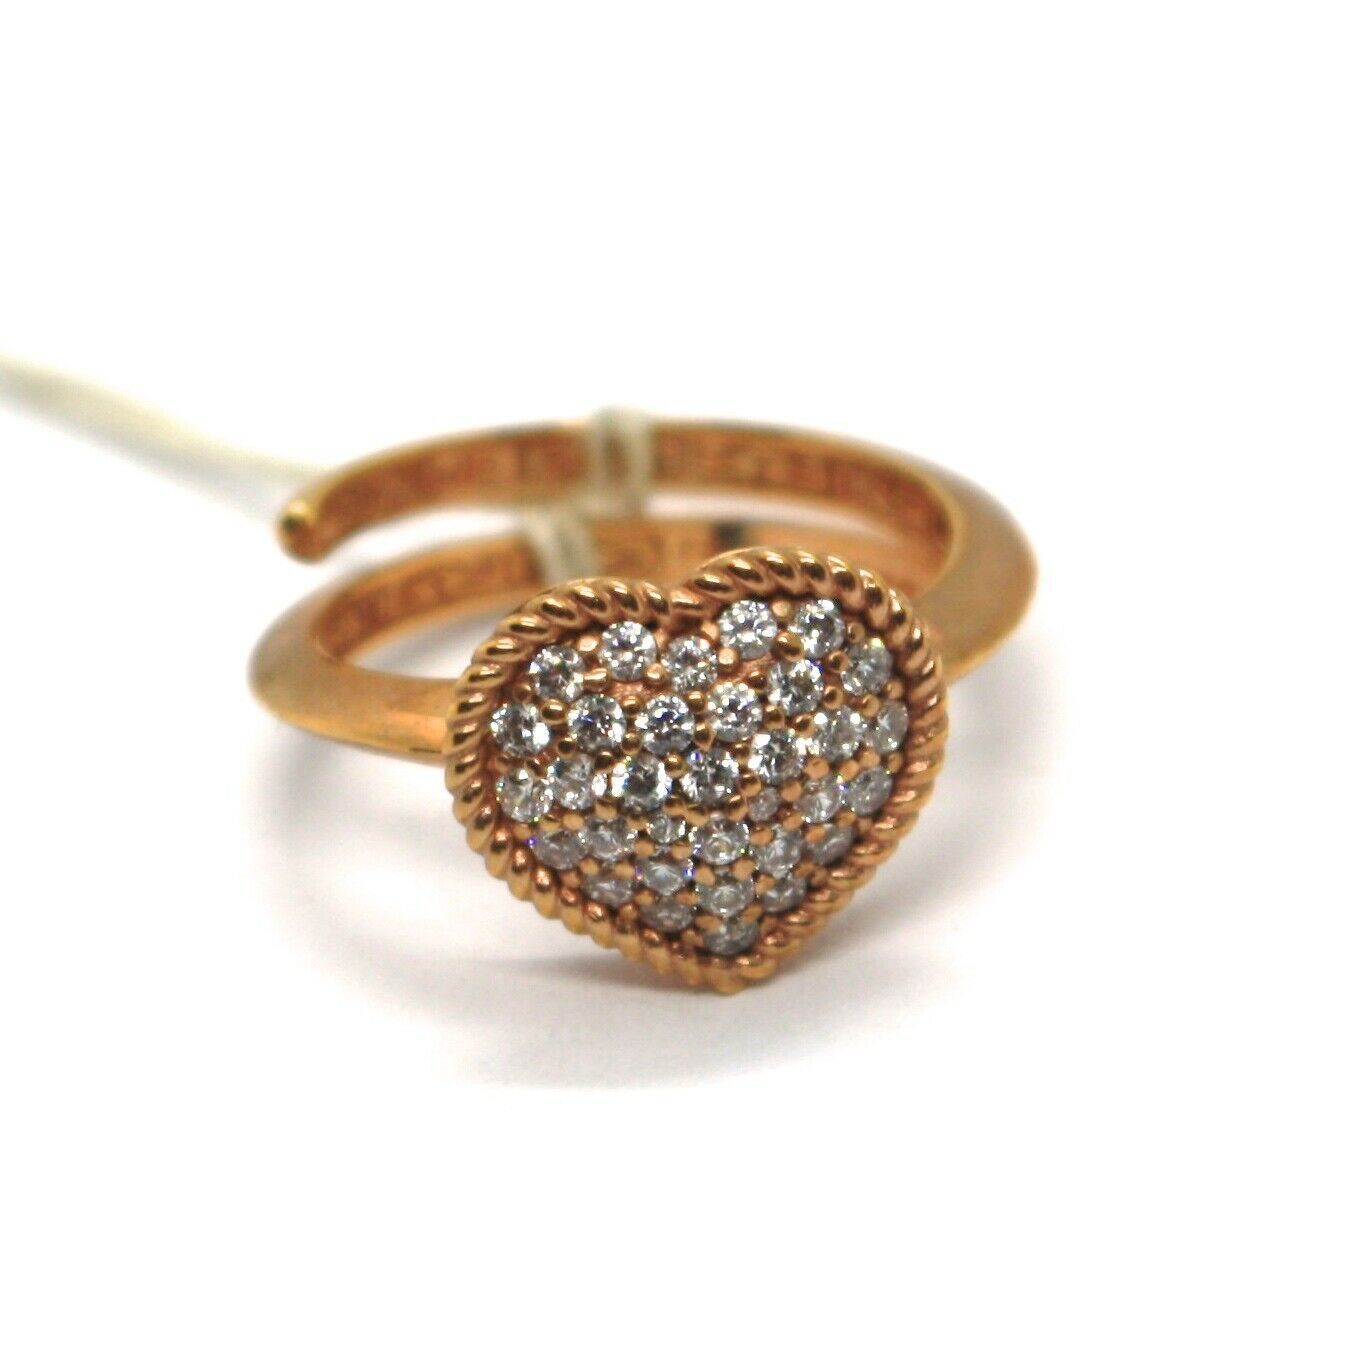 REBECCA BRONZE SOLITAIRE ROSE RING HEART WITH CUBIC ZIRCONIA B14ARB04 ITALY MADE